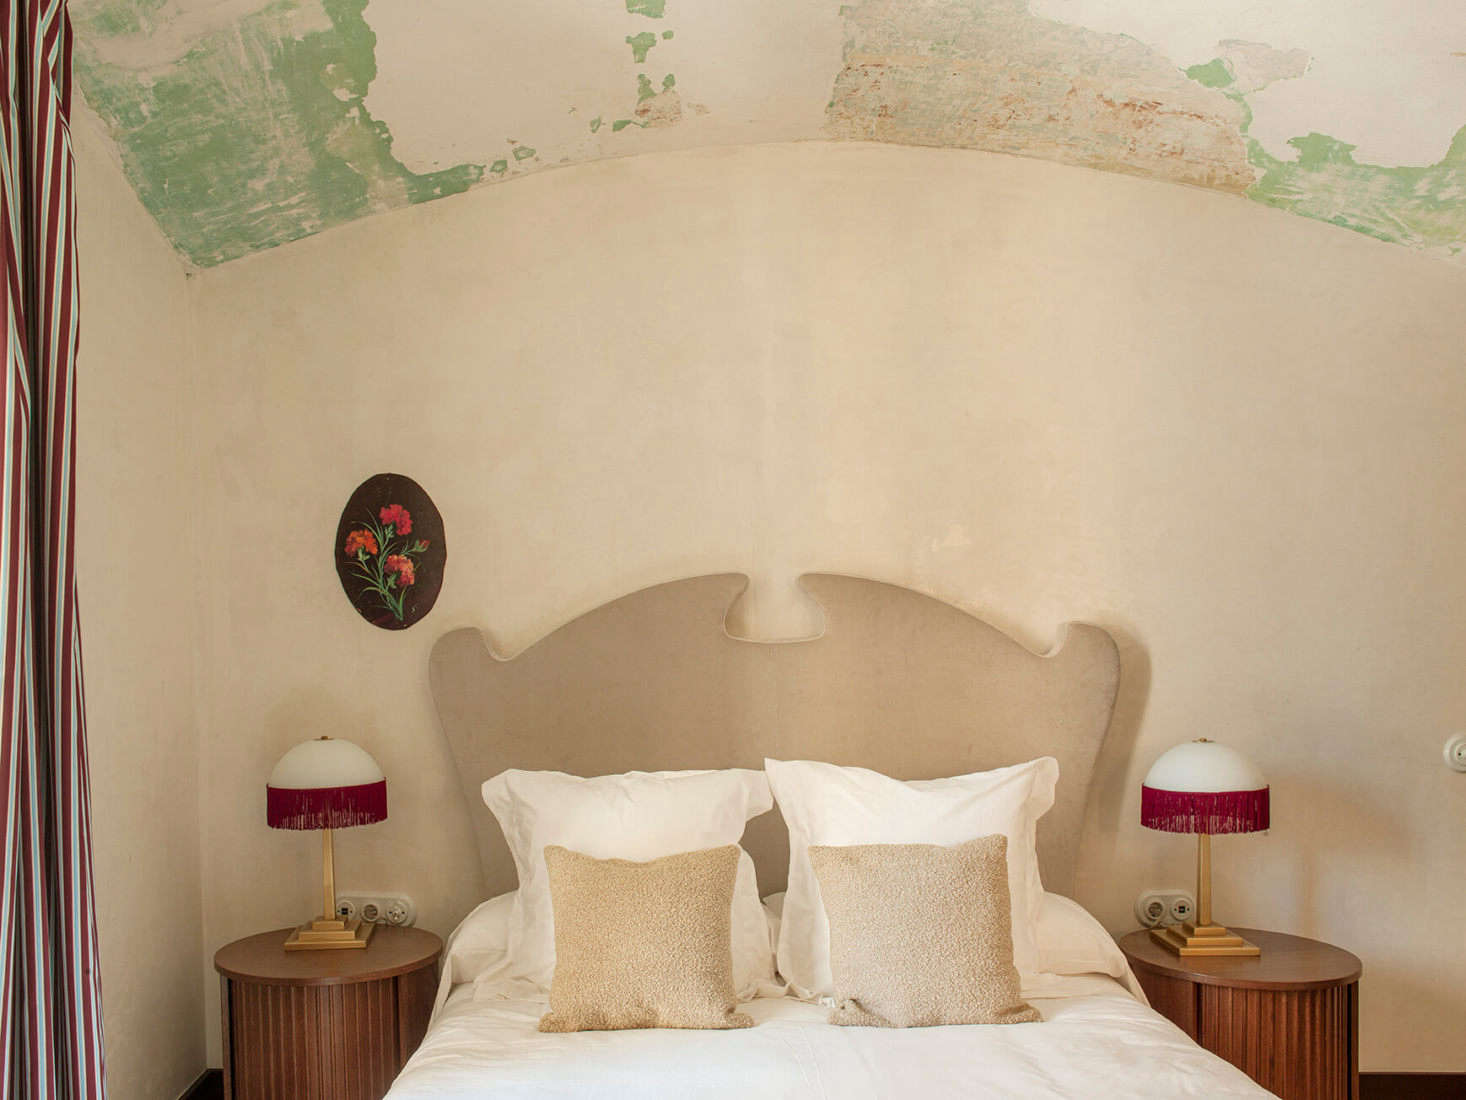 Under an atmospheric raw ceiling, a fanciful headboard flanked by fringed lamps.